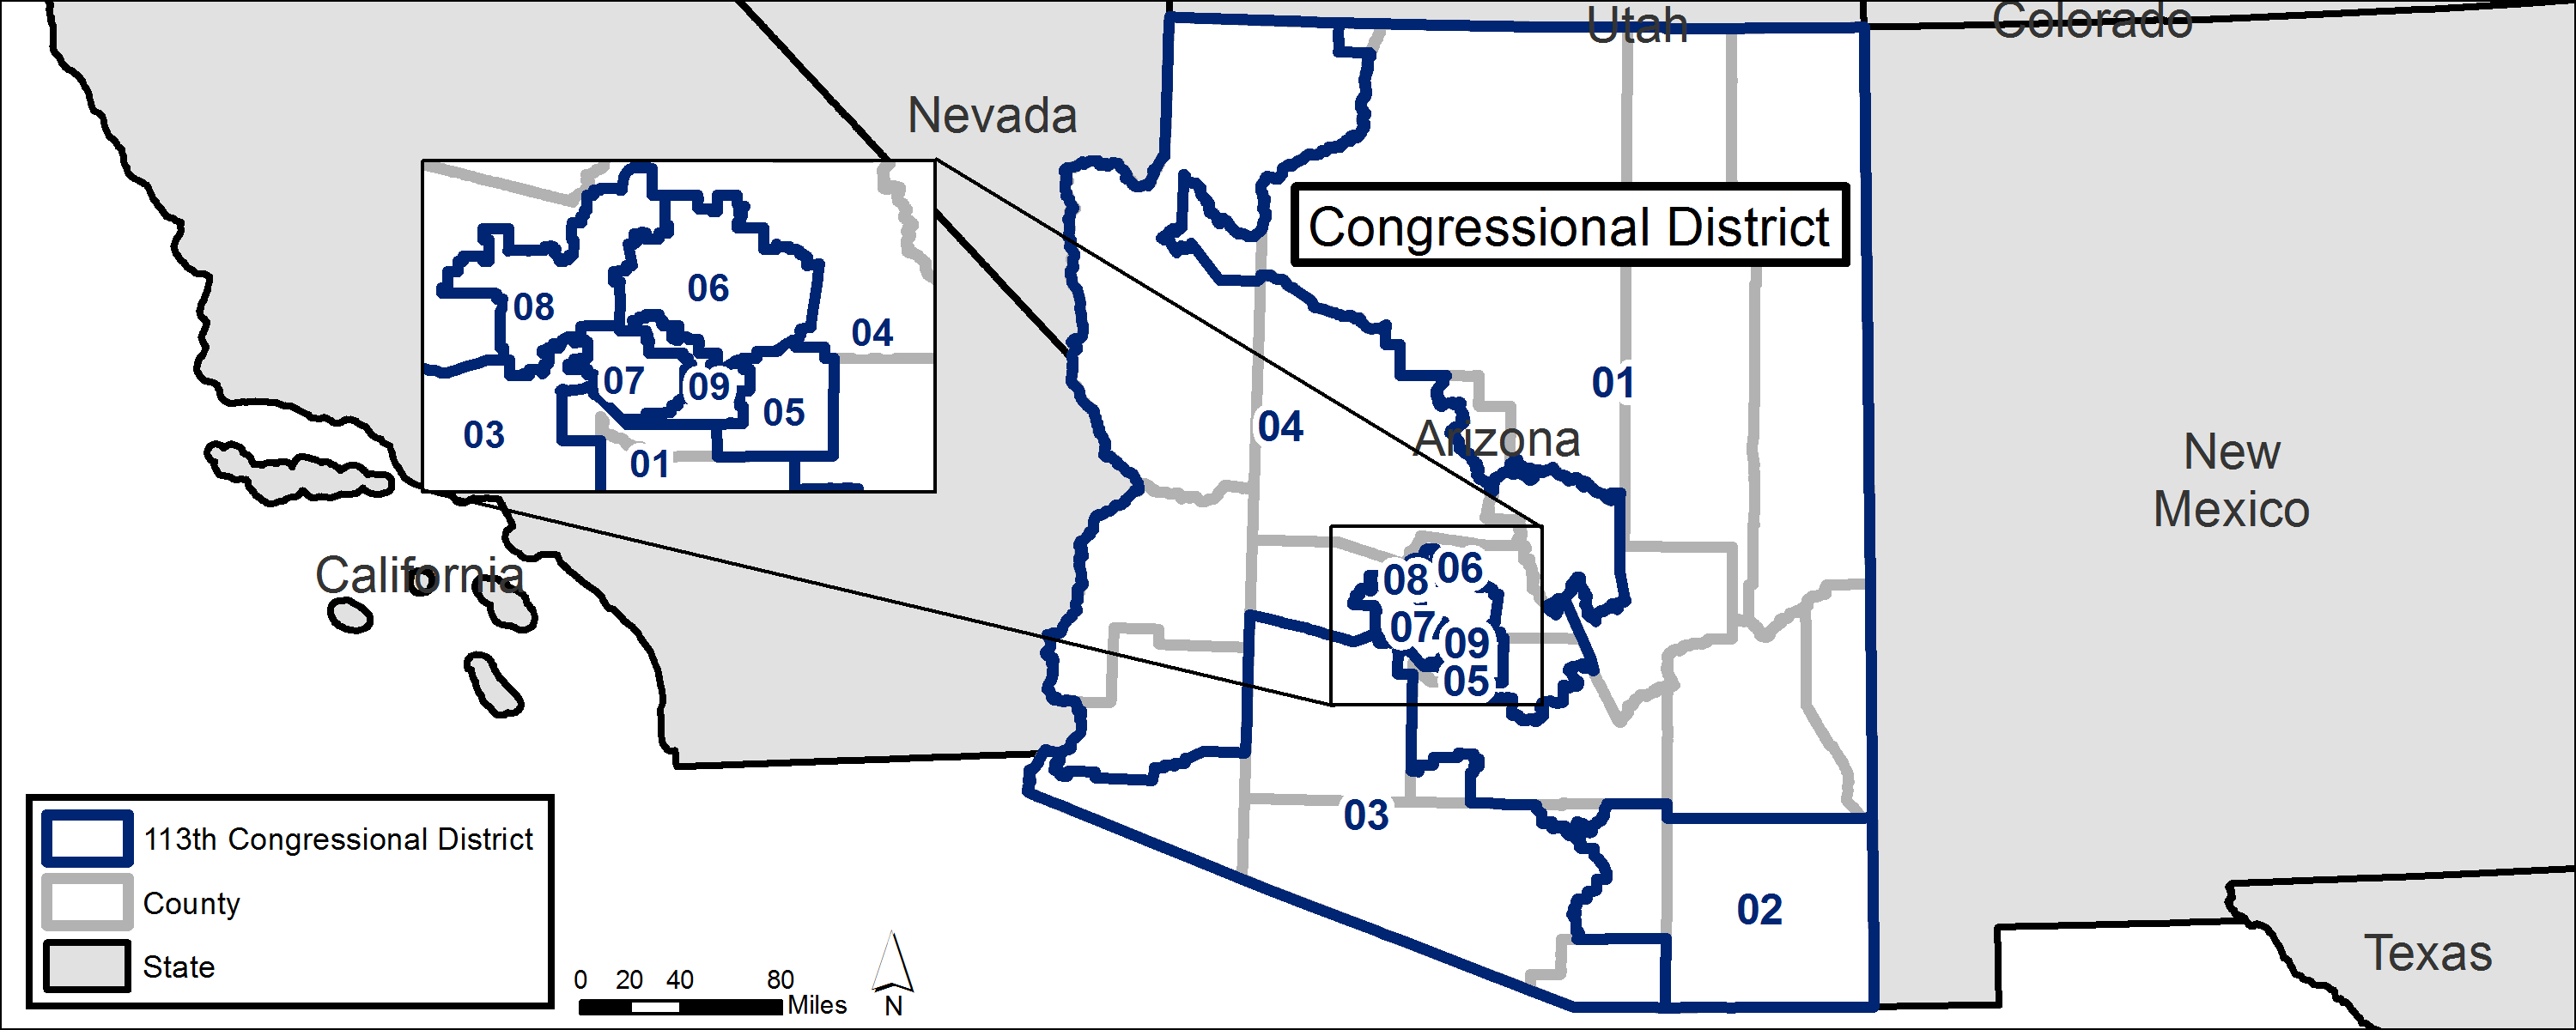 Congressional Districts By Zip Code Spreadsheet Within Geography Atlas  Congressional Districts  Geography  U.s. Census